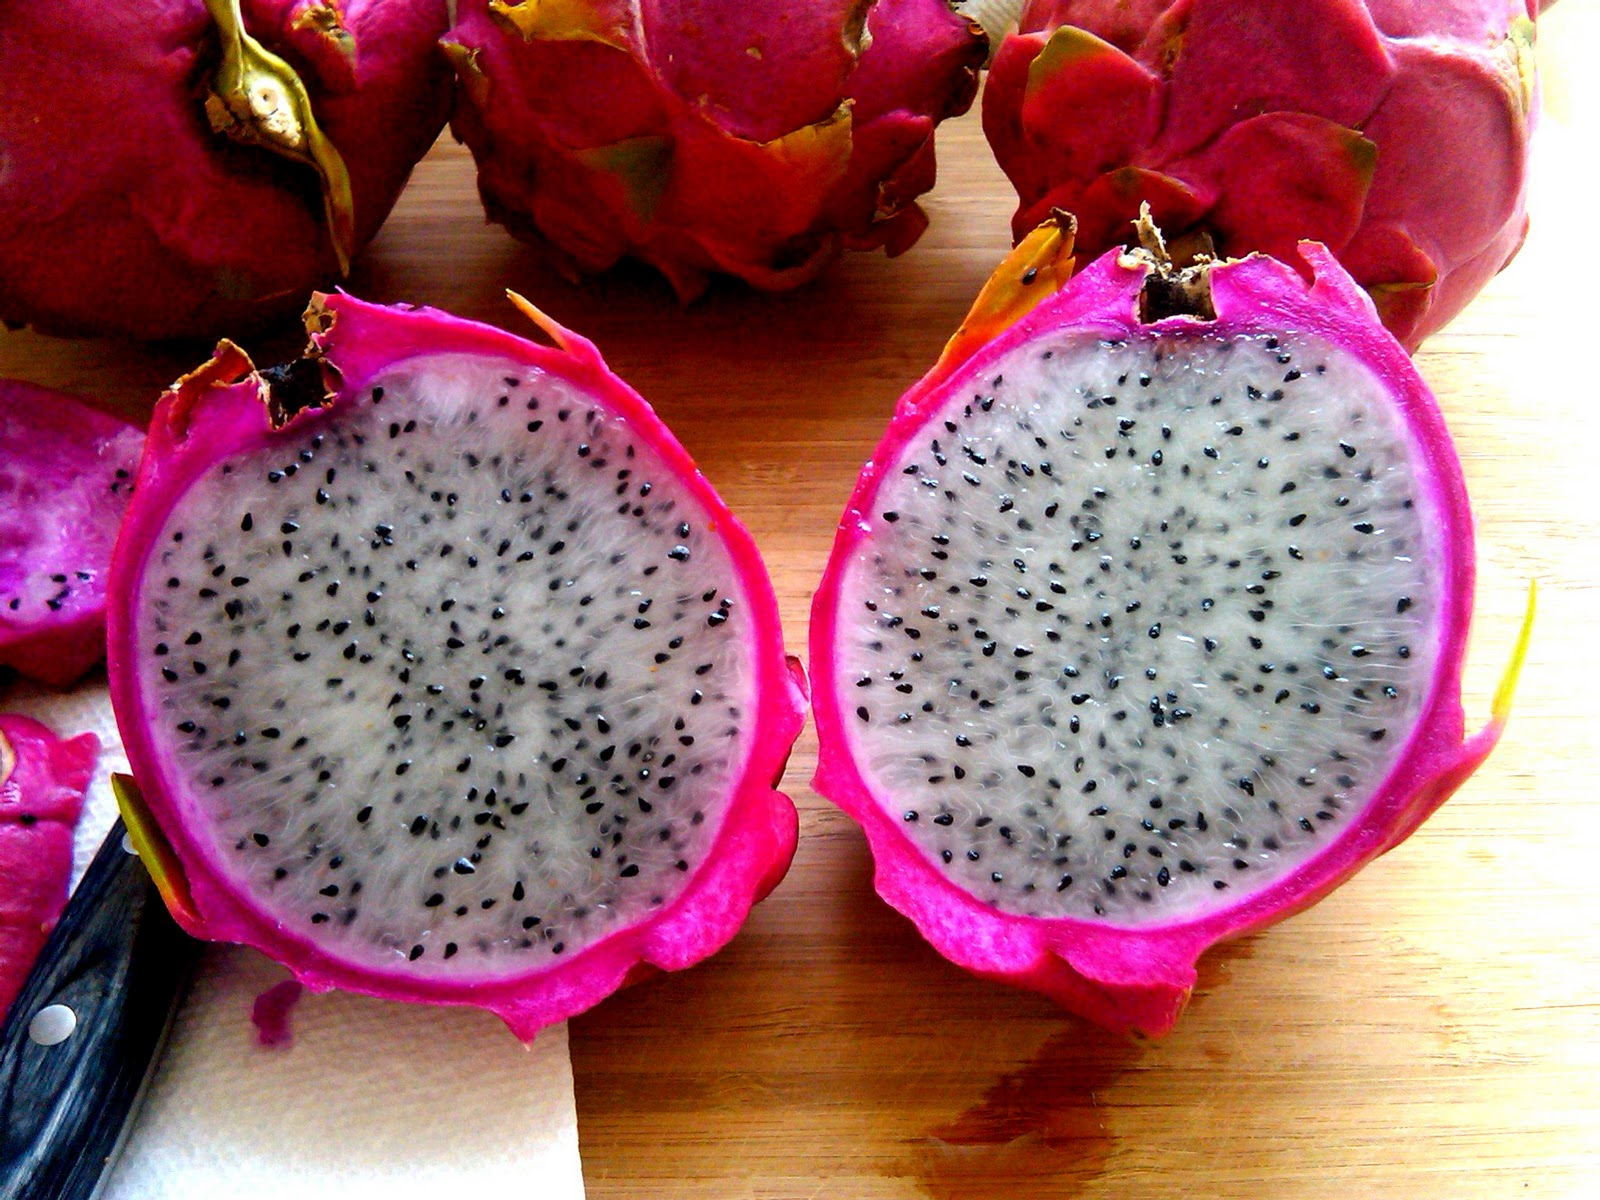 How To Peel N Eat Dragon Fruit Solution For How To For Dummies